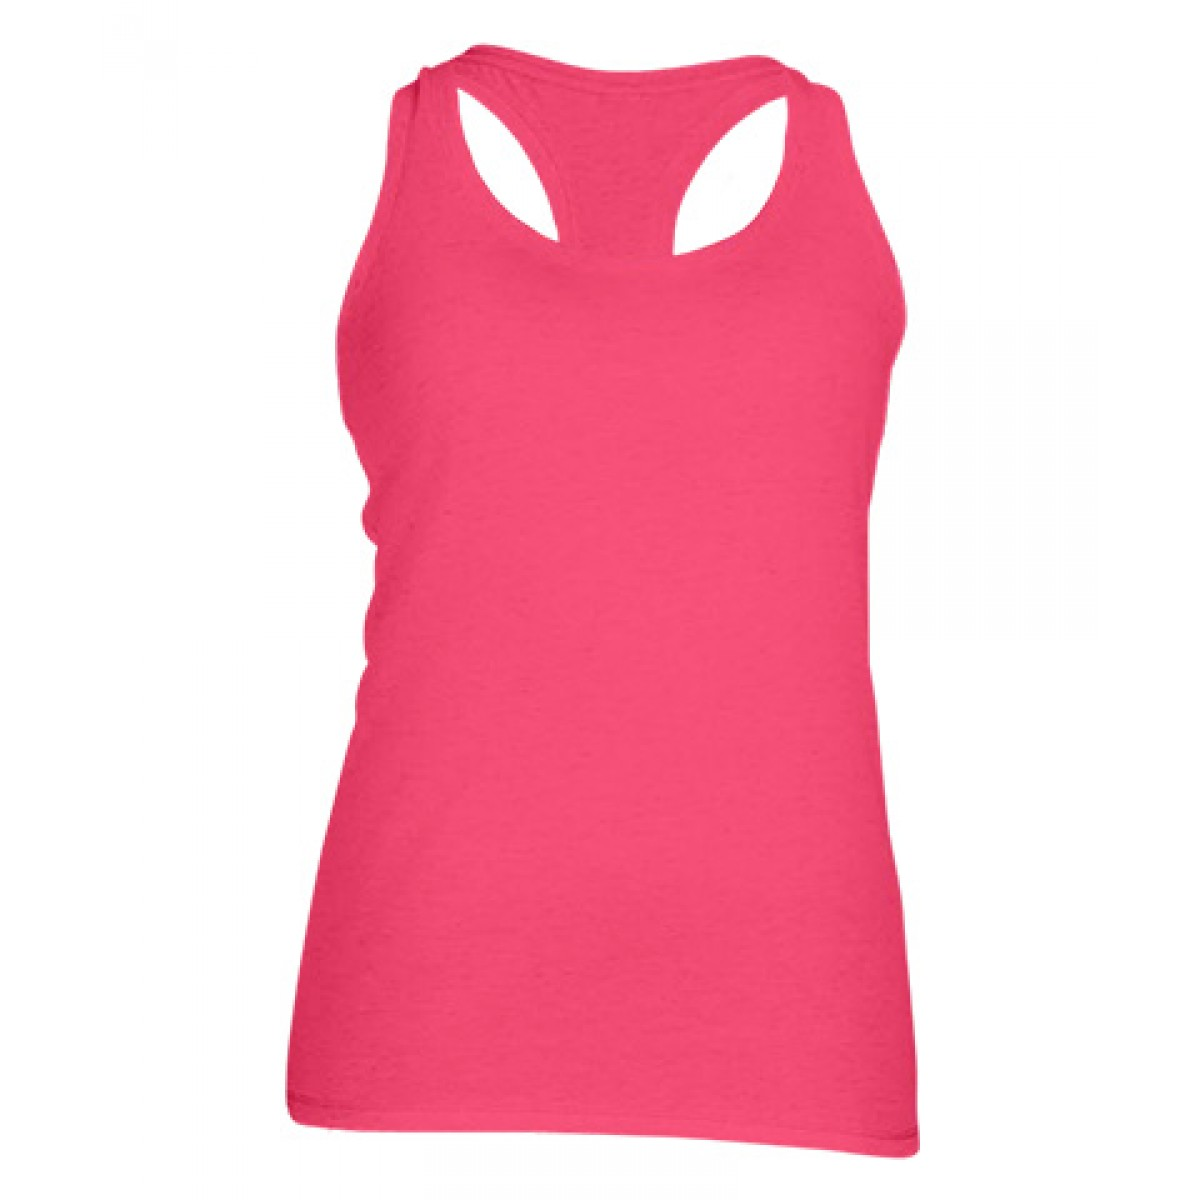 Ladies' Performance Racerback Tank-Safety Pink-M